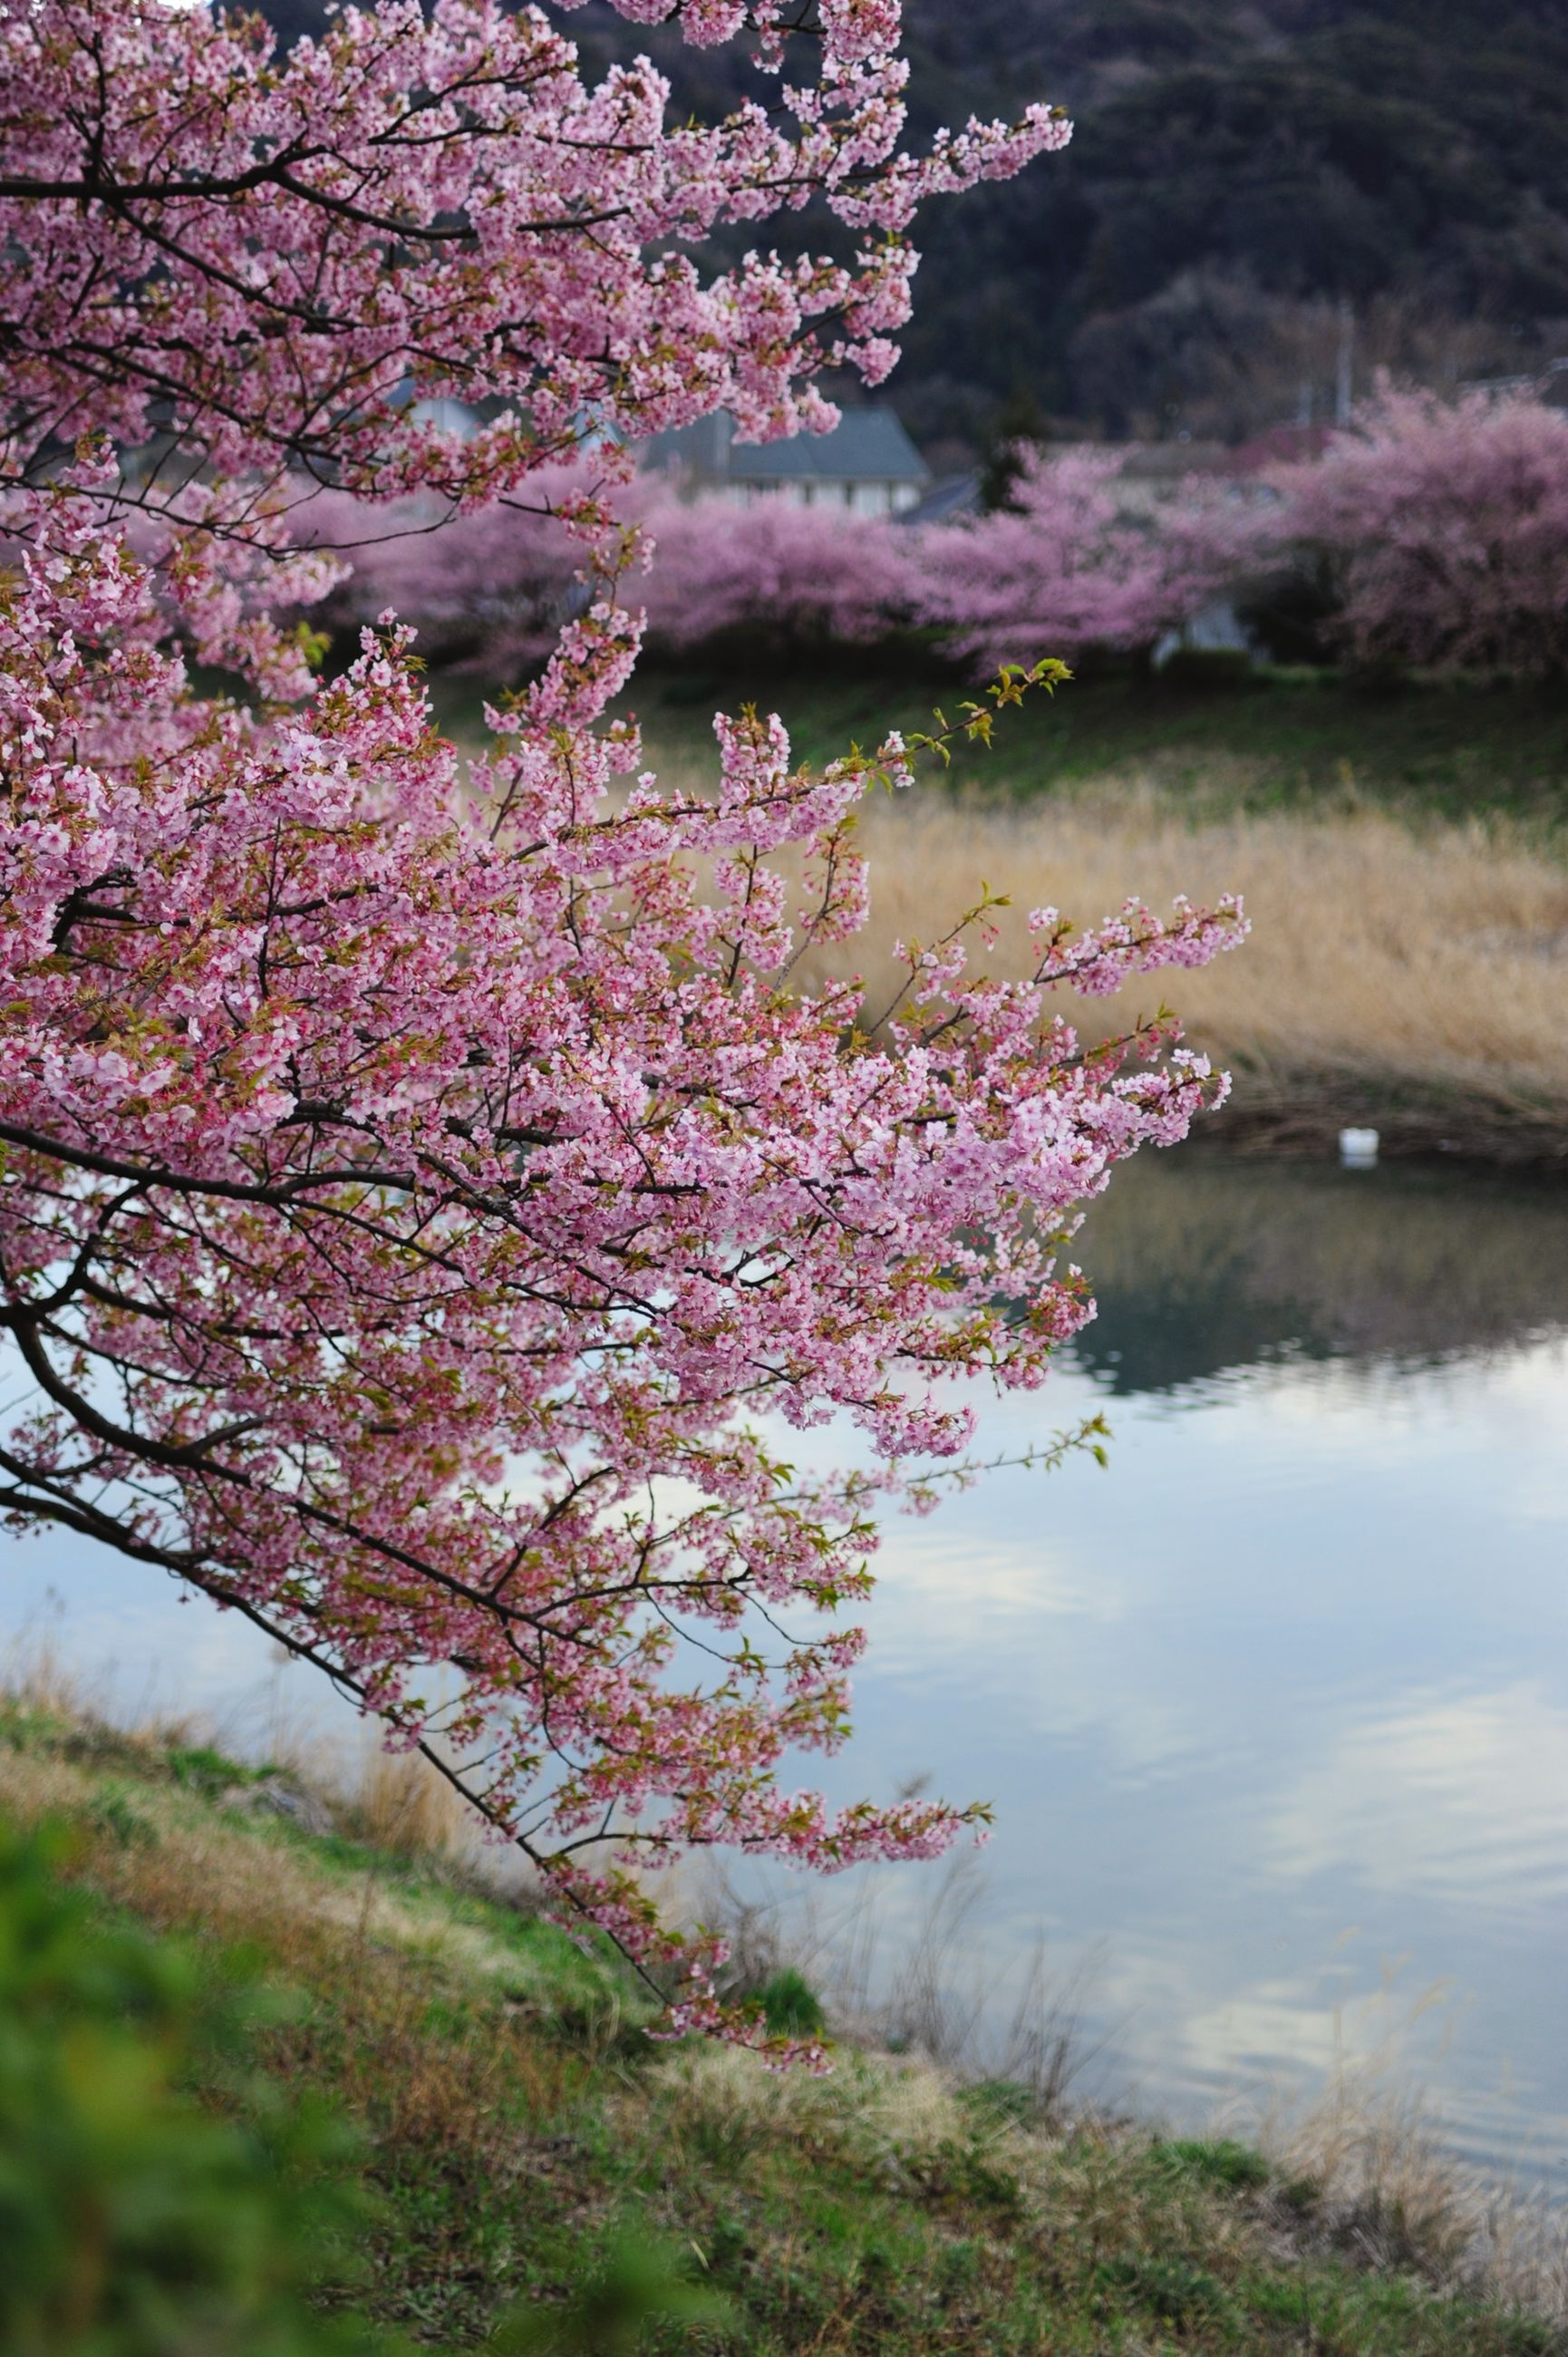 flower, tree, beauty in nature, water, growth, nature, pink color, branch, tranquil scene, tranquility, scenics, freshness, lake, plant, blossom, outdoors, day, river, idyllic, sky